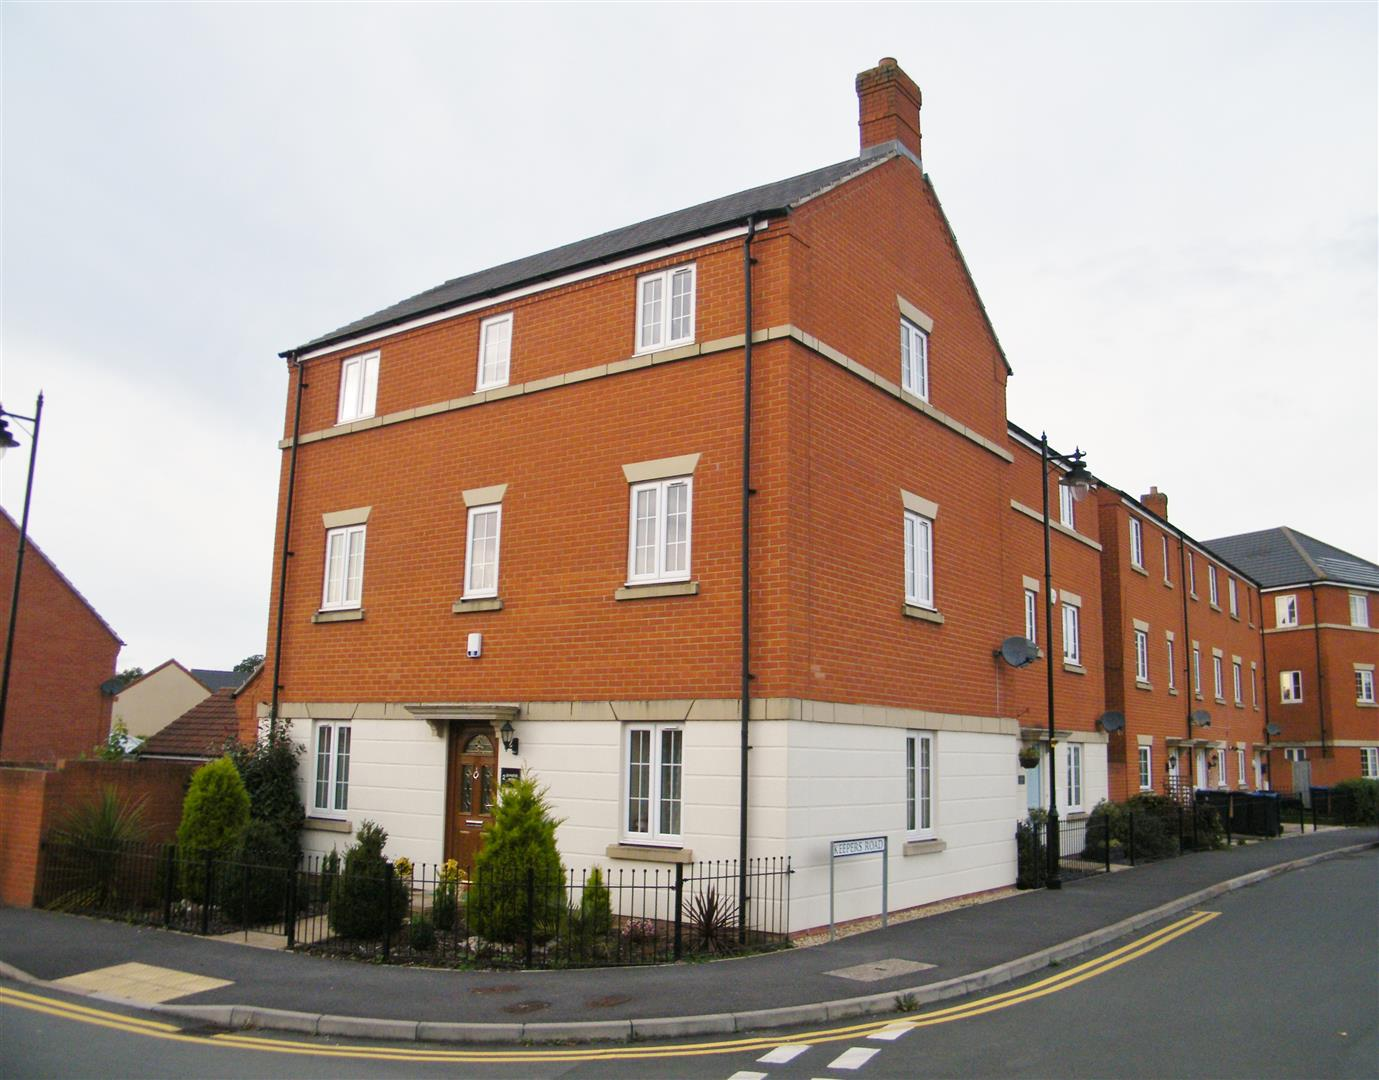 4 Bedrooms House for sale in Quakers Road, Devizes